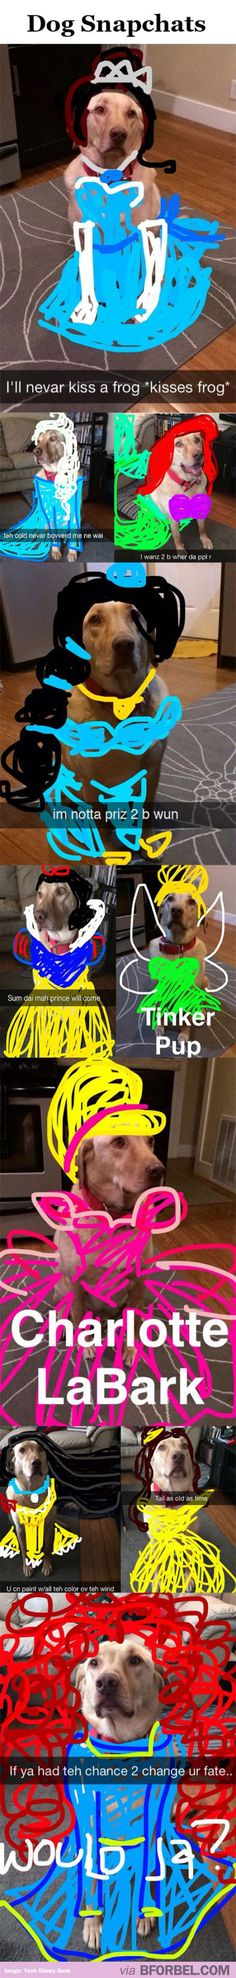 10 Snapchats That Turned This Dog Into A Disney Princess…